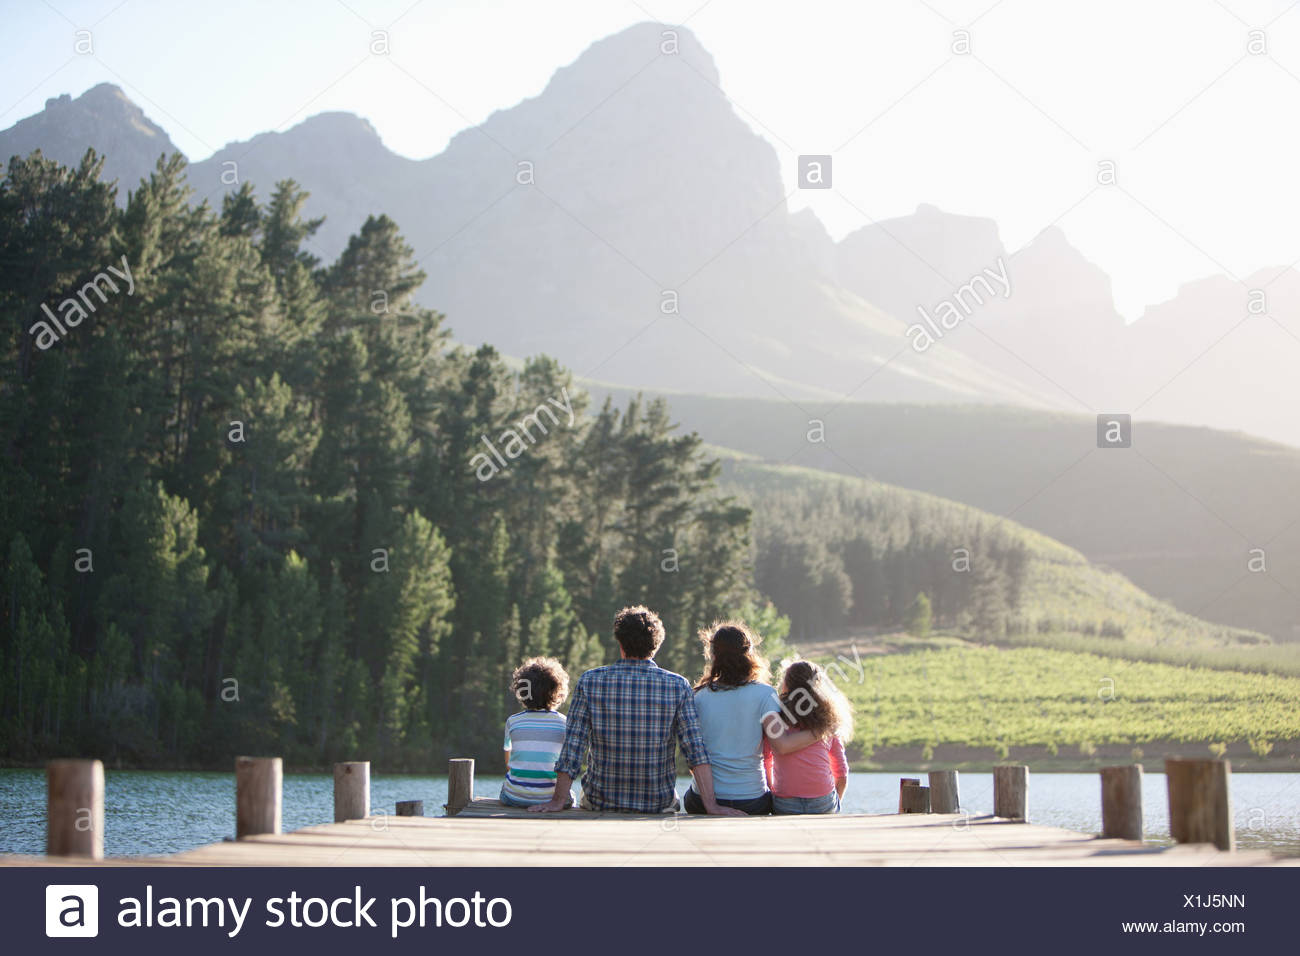 Family sitting on lake dock - Stock Image